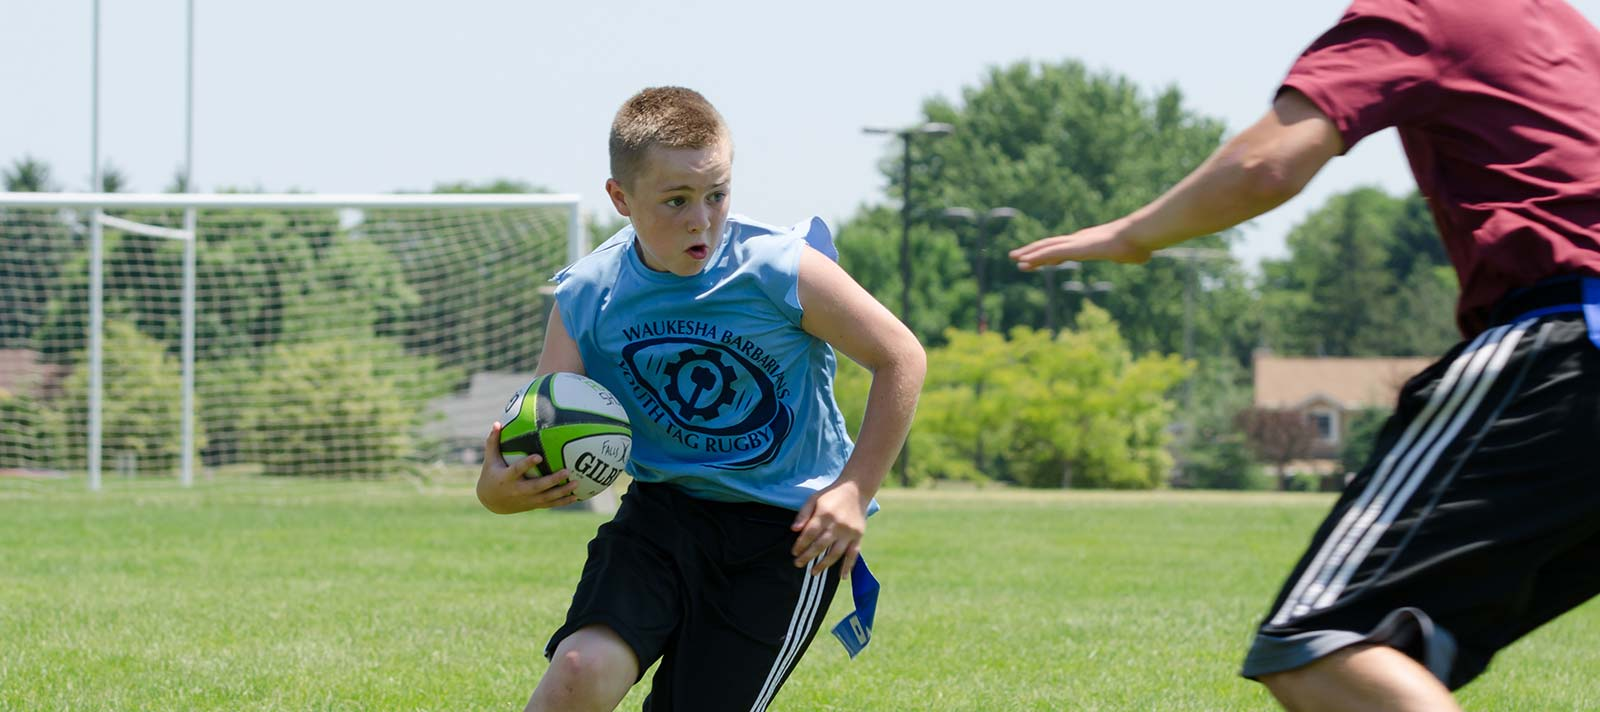 Waukesha Barbarians Tag Rugby